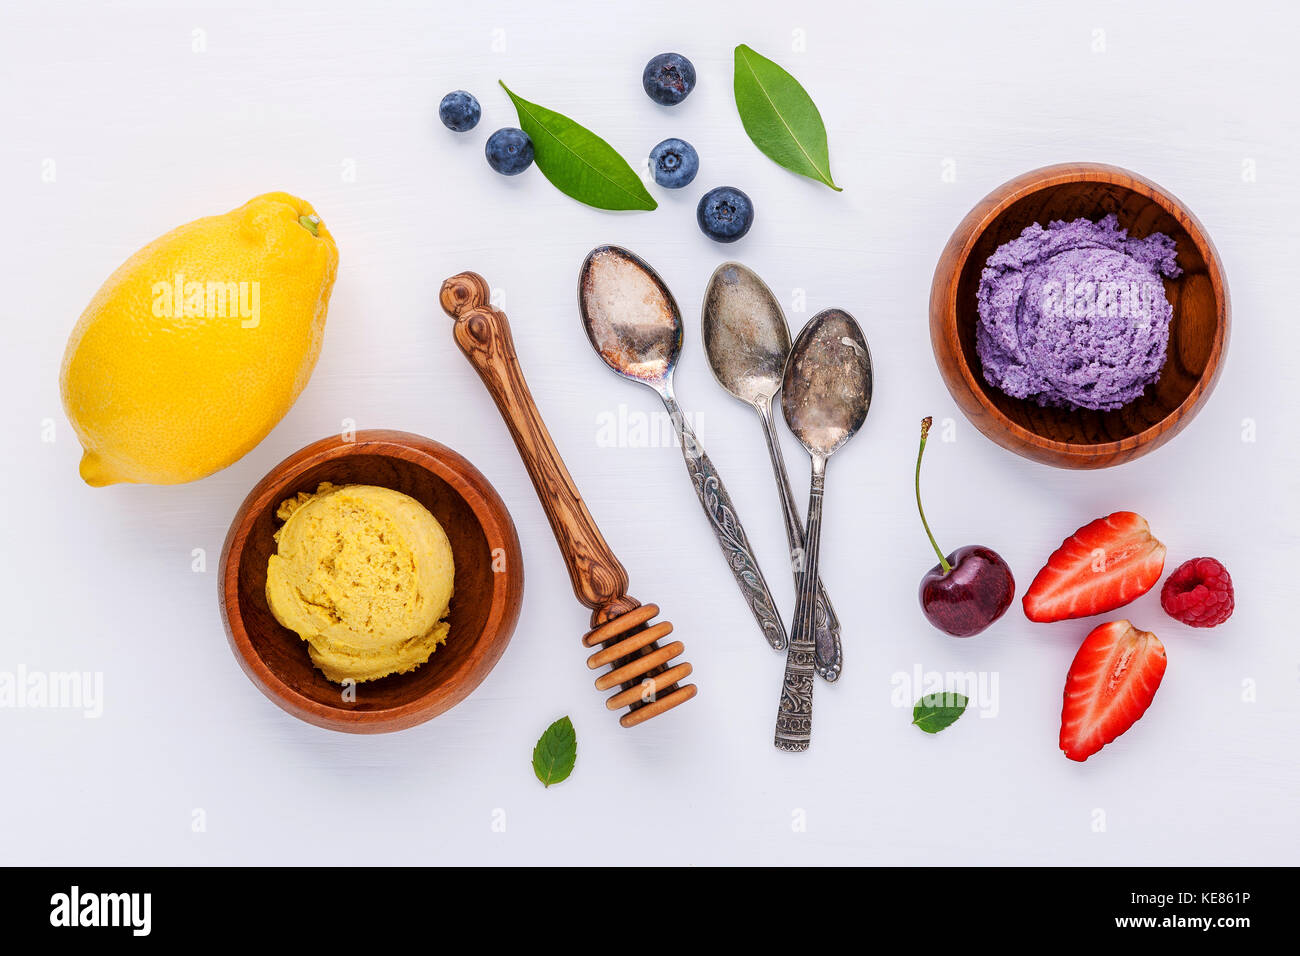 Flat lay ice cream with various fruits raspberry ,blueberry ,strawberry ,lemon and cherry  setup on white background - Stock Image